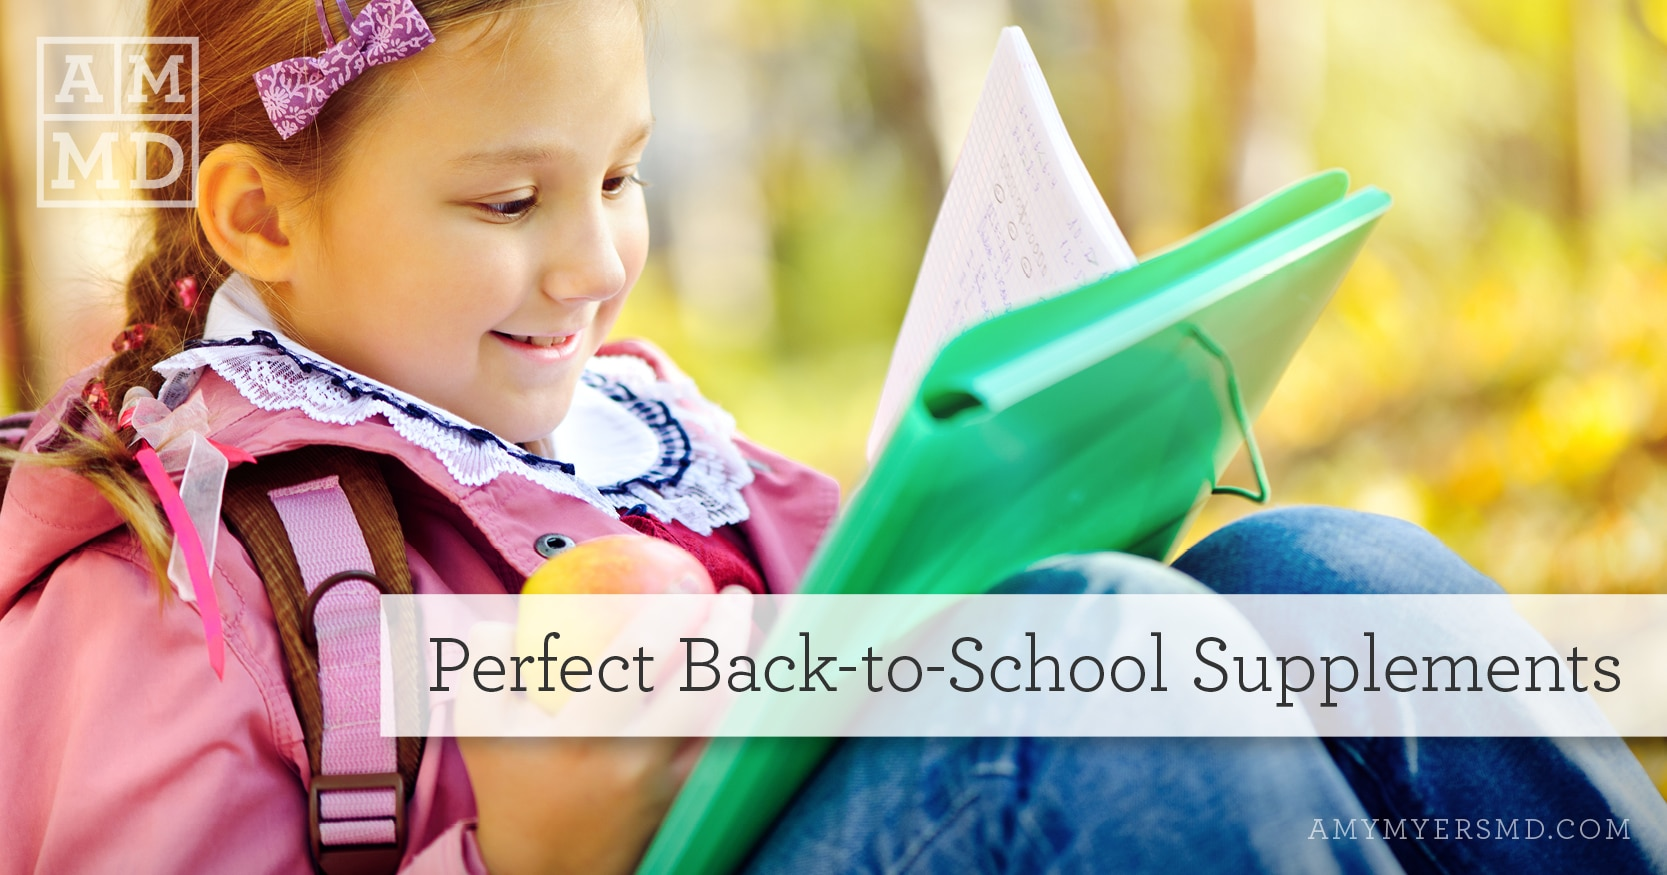 Perfect Back-to-School Supplements - A Girl Working on Homework - Featured Image - Amy Myers MD